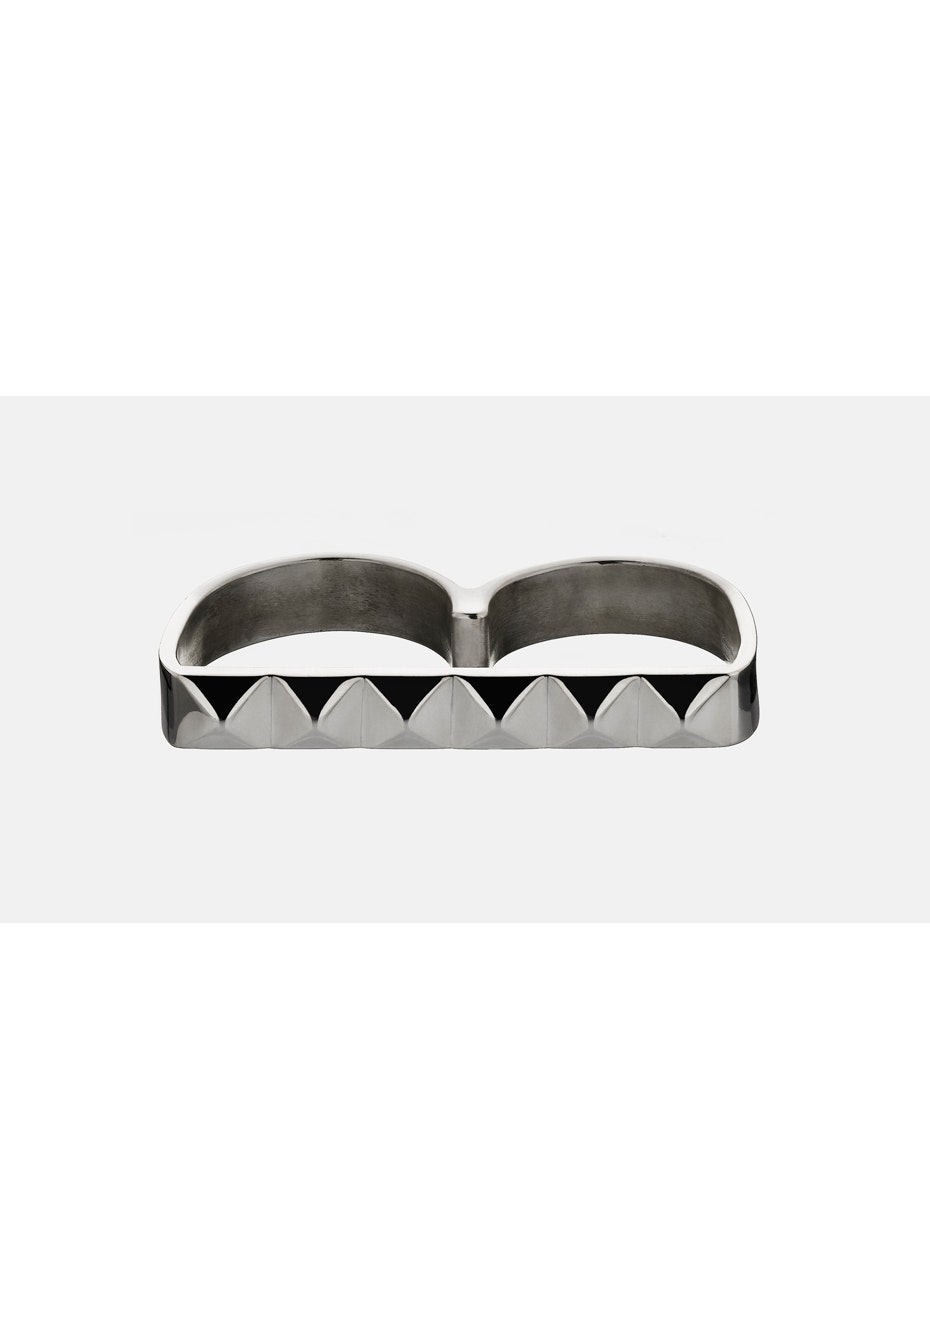 Meadowlark - Sutdded Double Ring - Silver